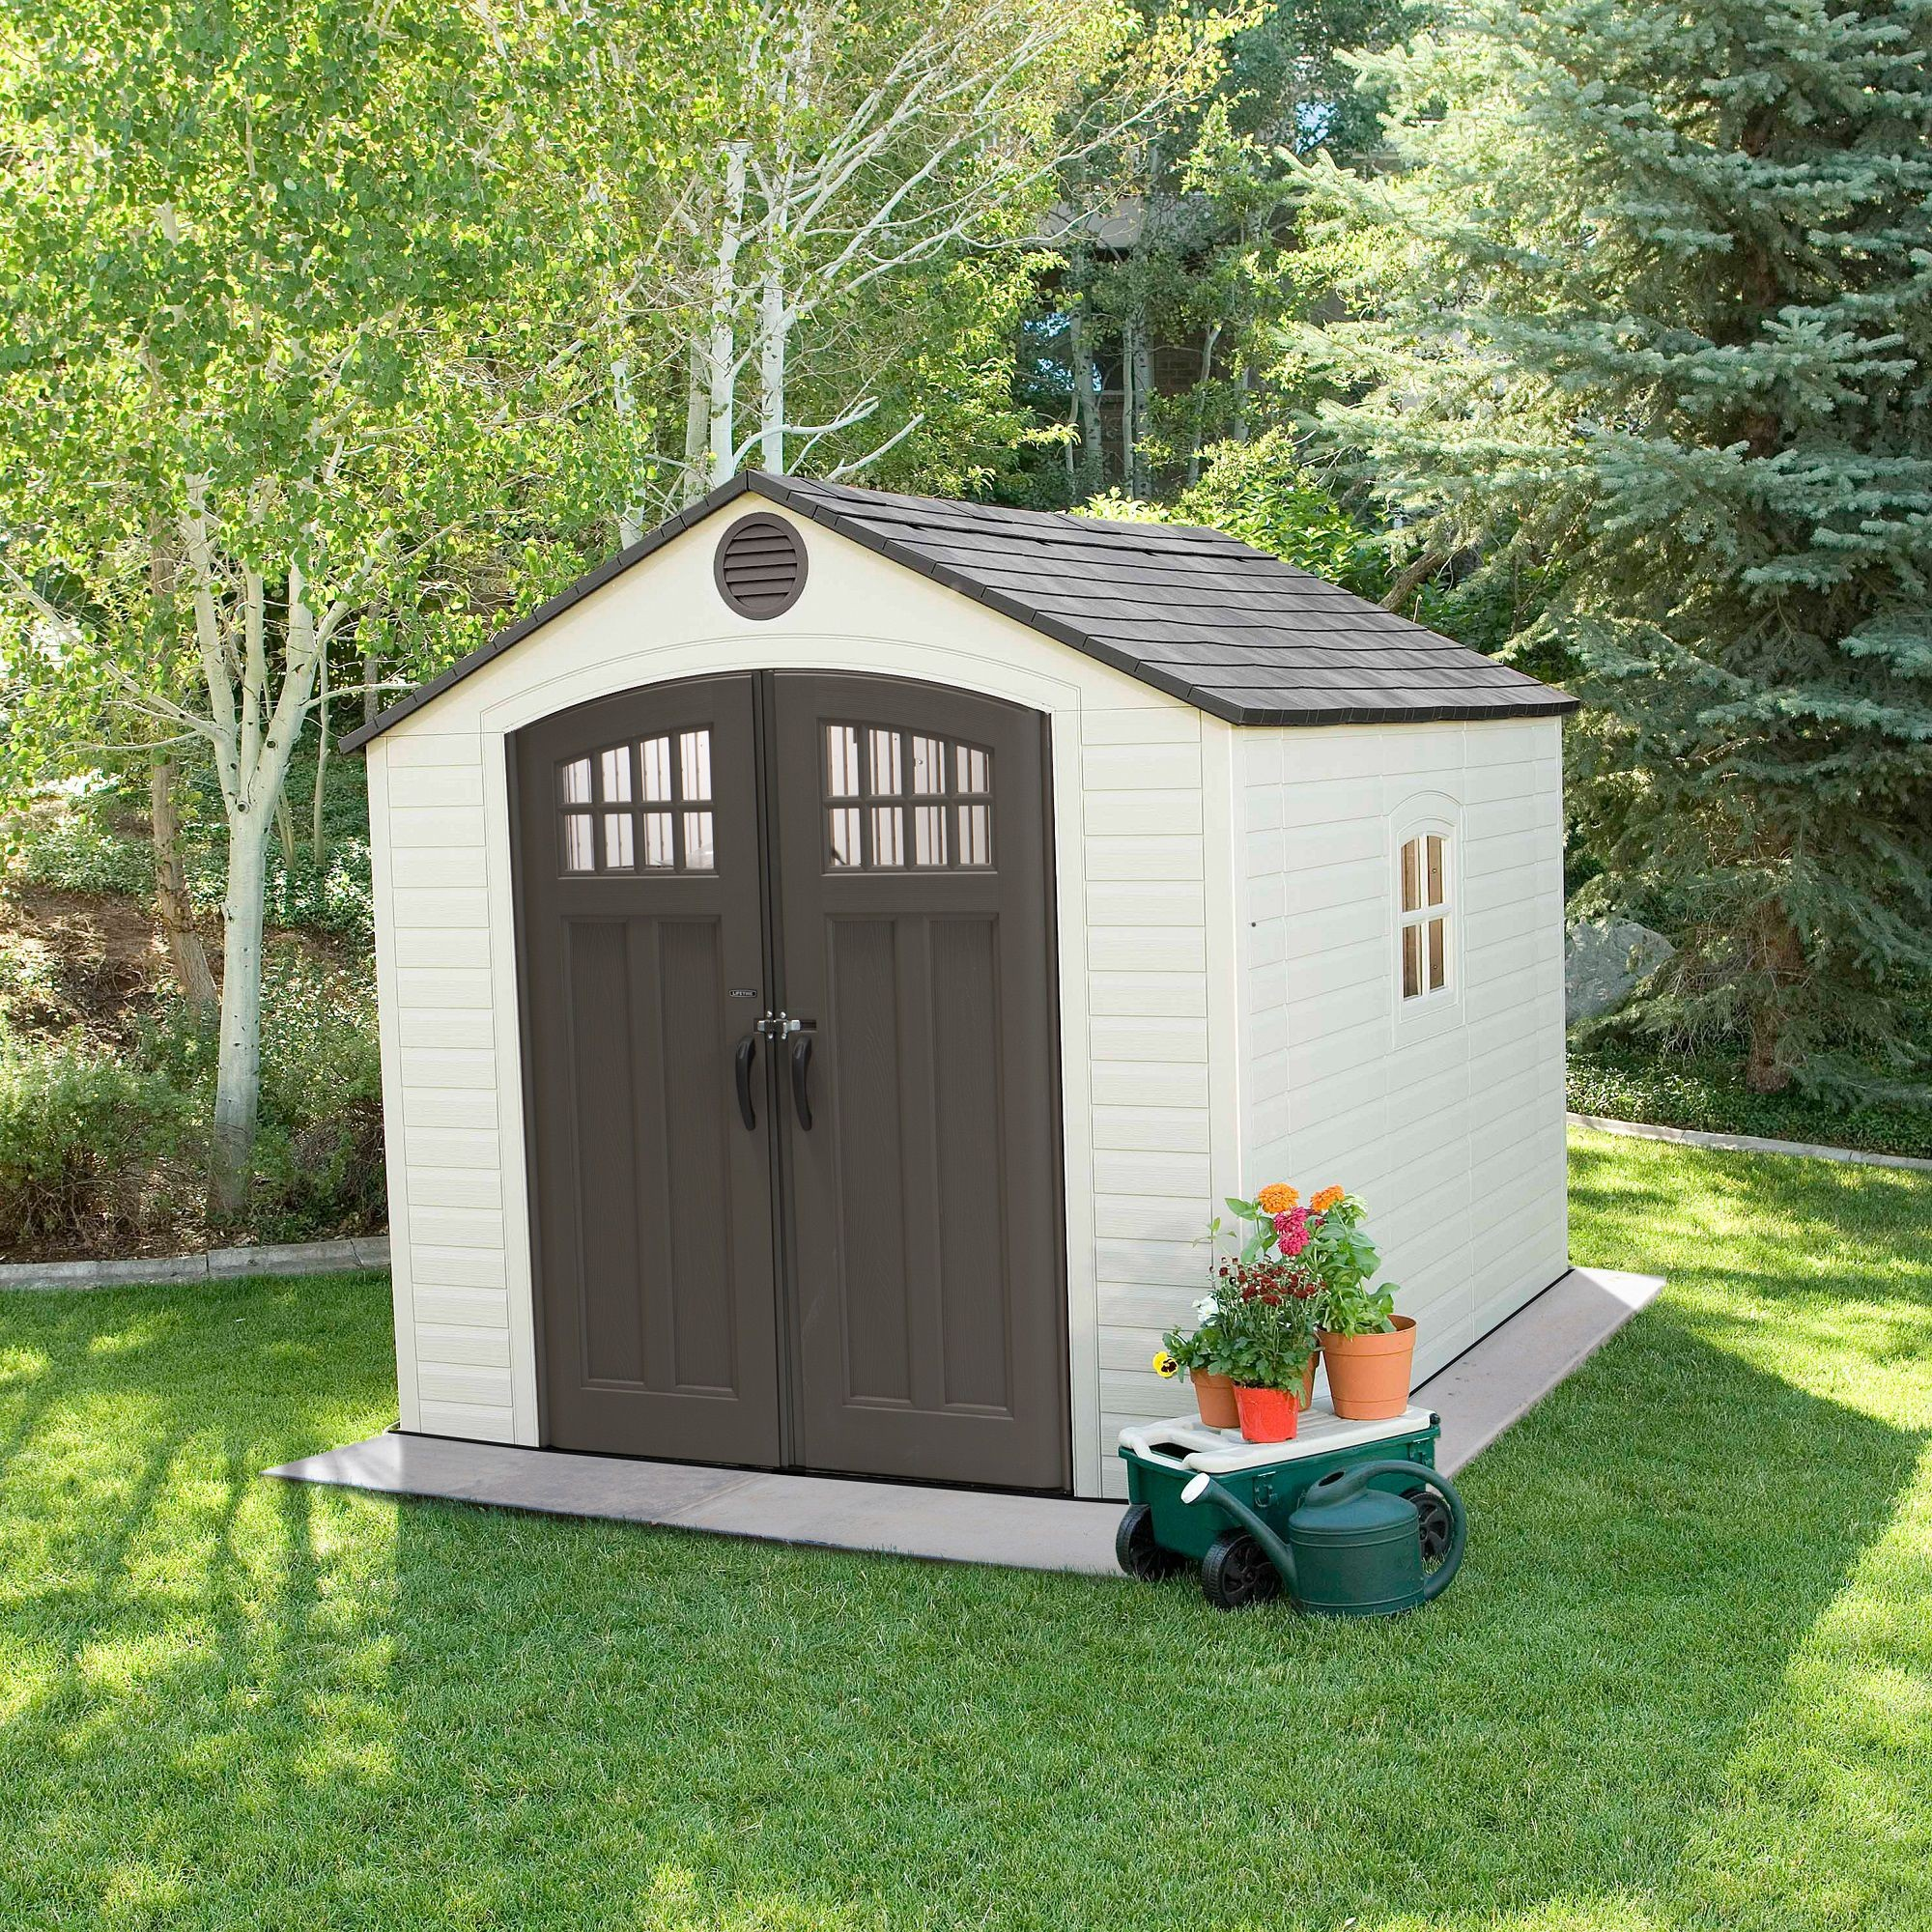 3 Pallets of Sheds, Life Vests, Housewares & More Ext. Retail $11,470, Uxbridge, MA